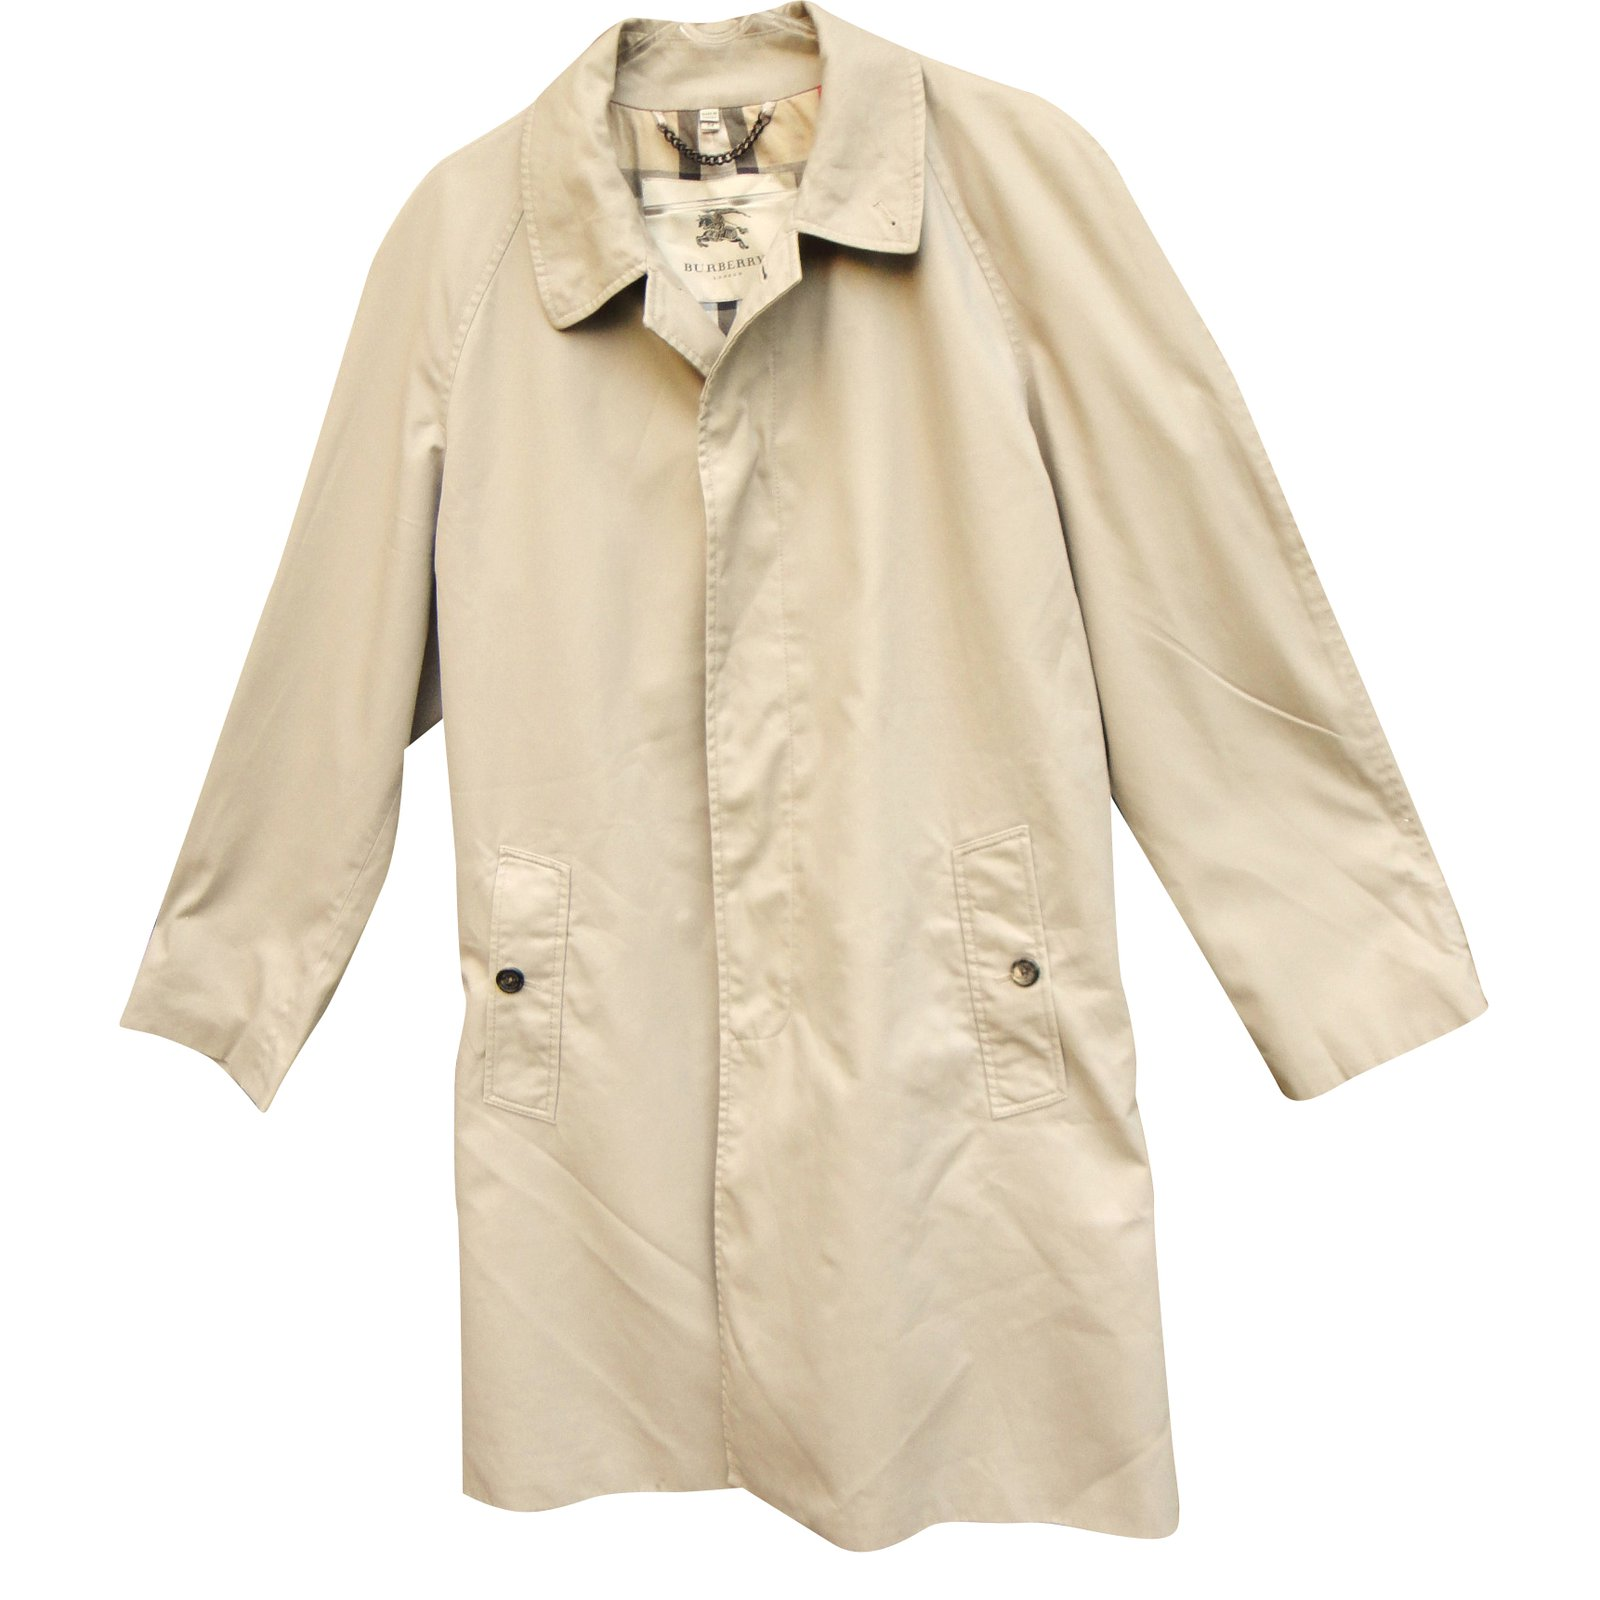 Manteaux homme Burberry Trench coat Polyester Beige ref.39795 - Joli ... db6a2b7e0a3